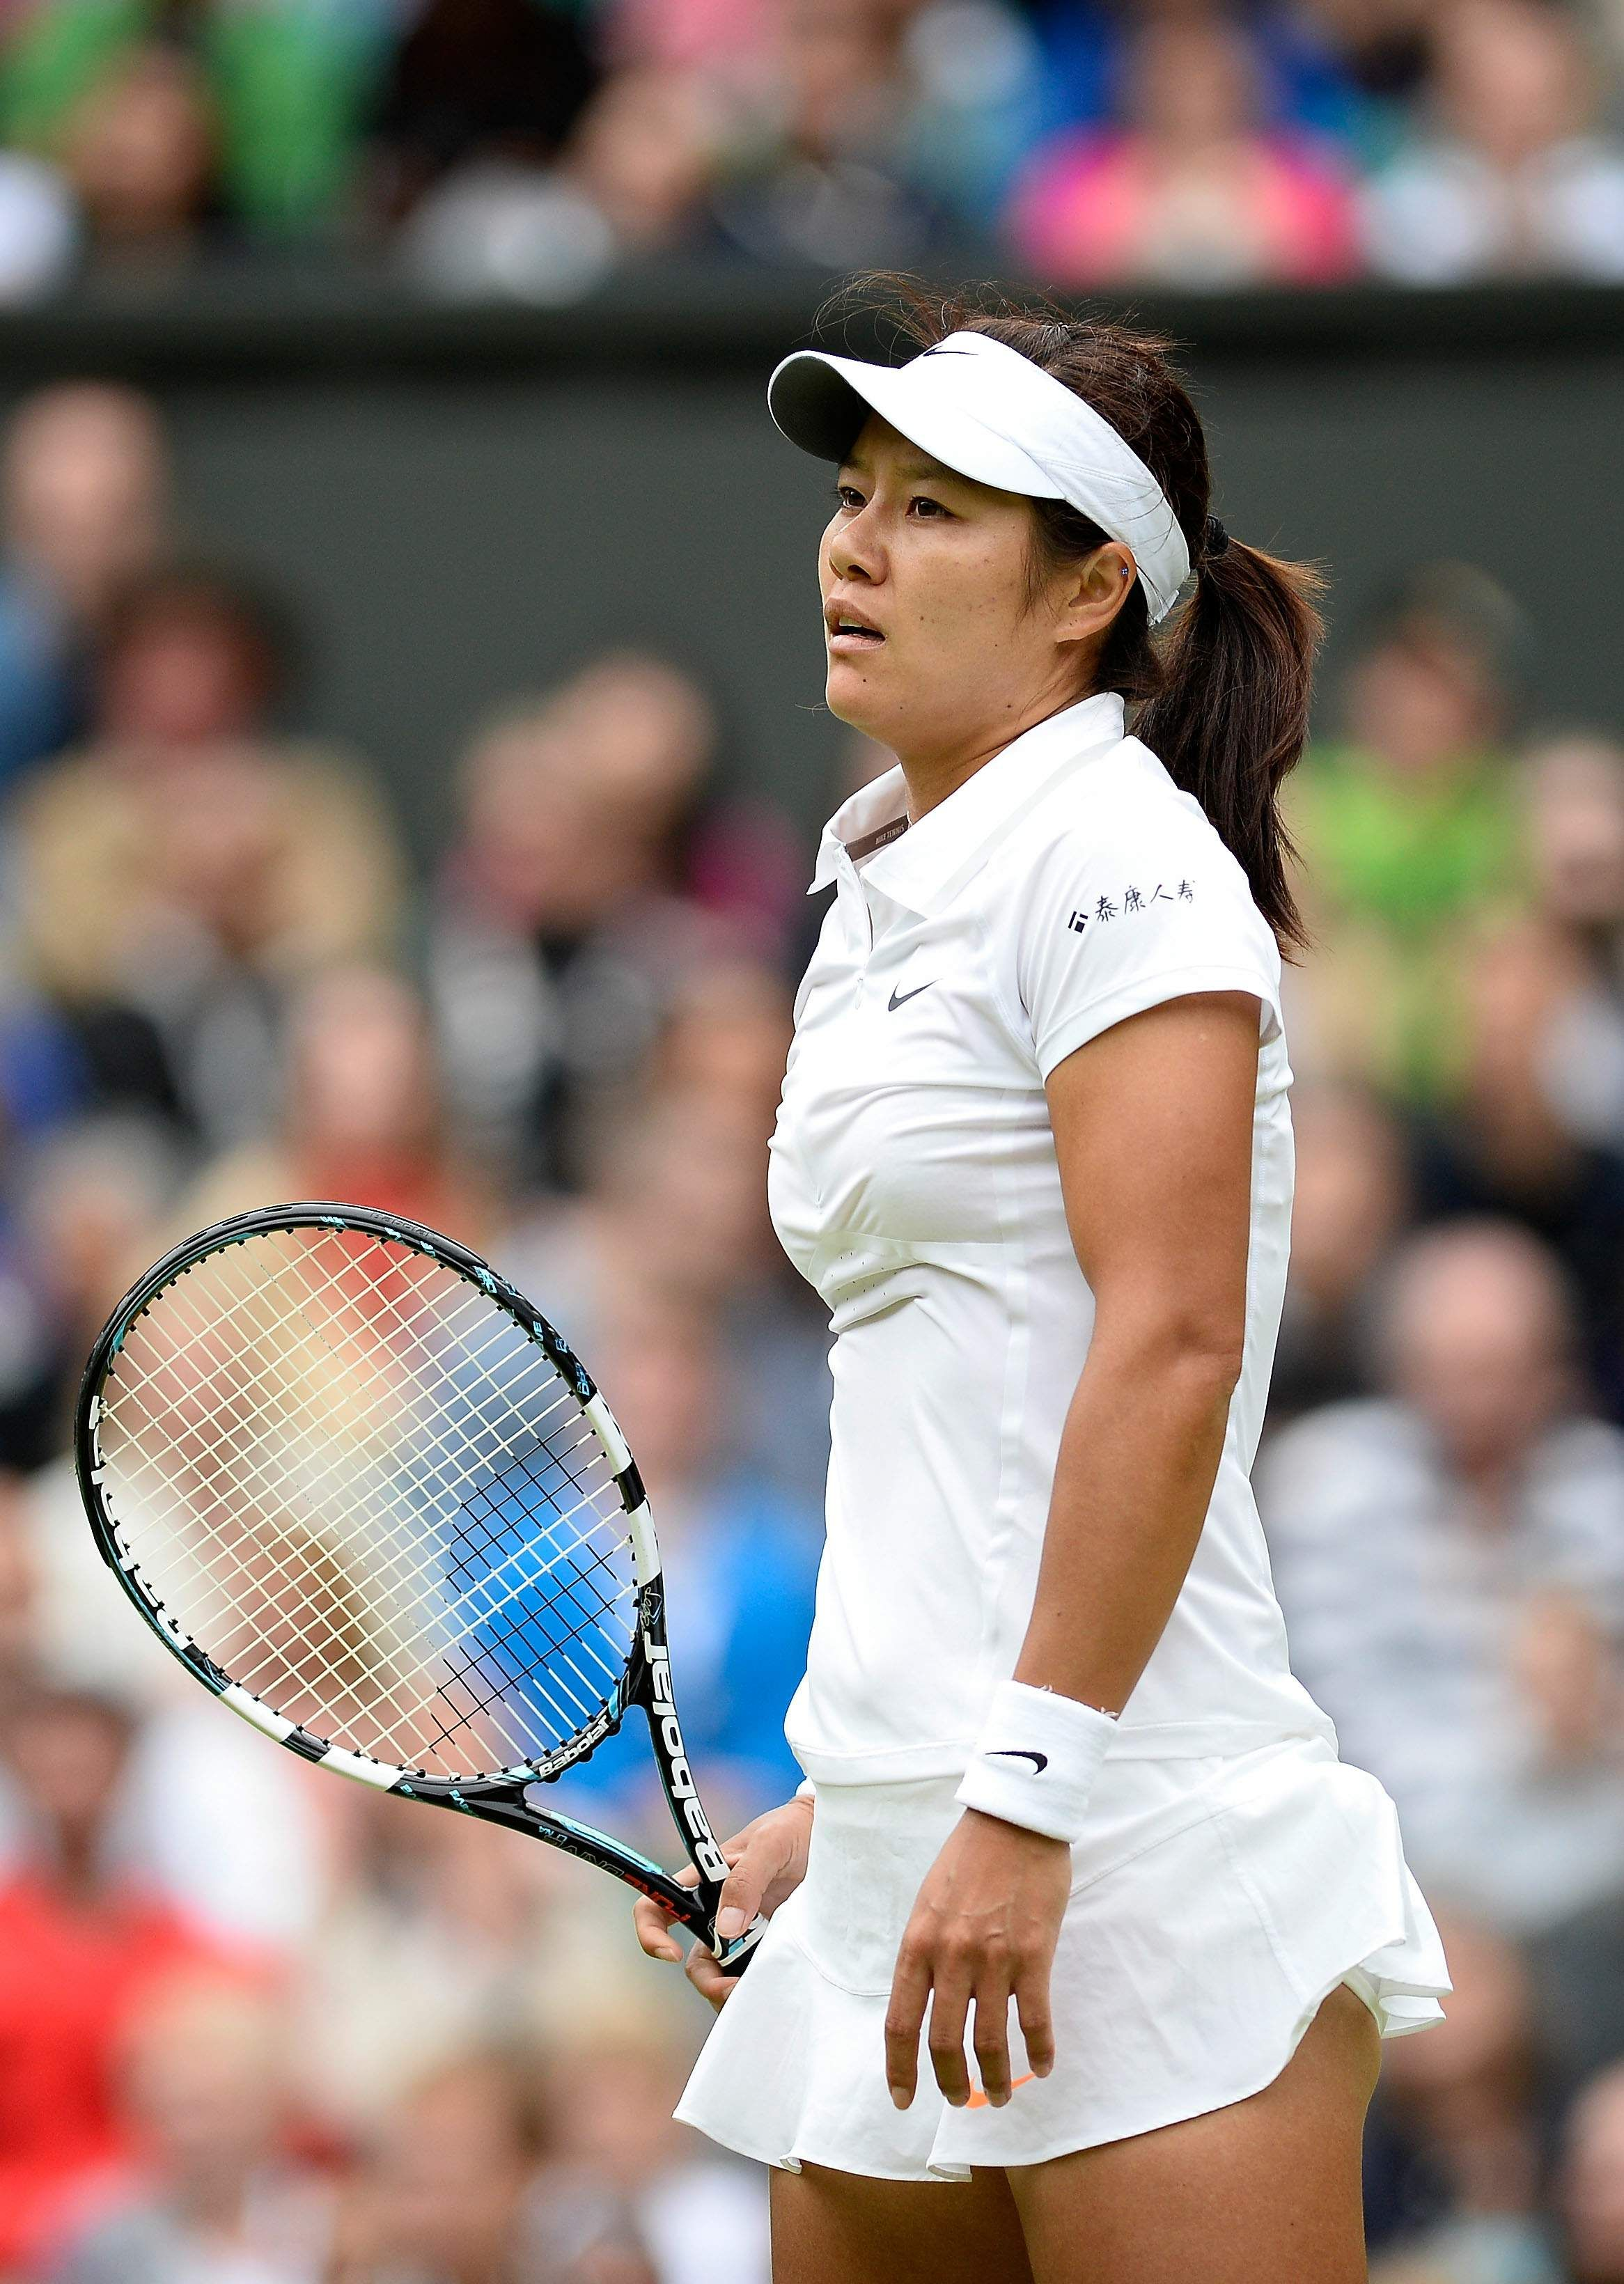 Wimbledon teams up with WeChat to attract Chinese young